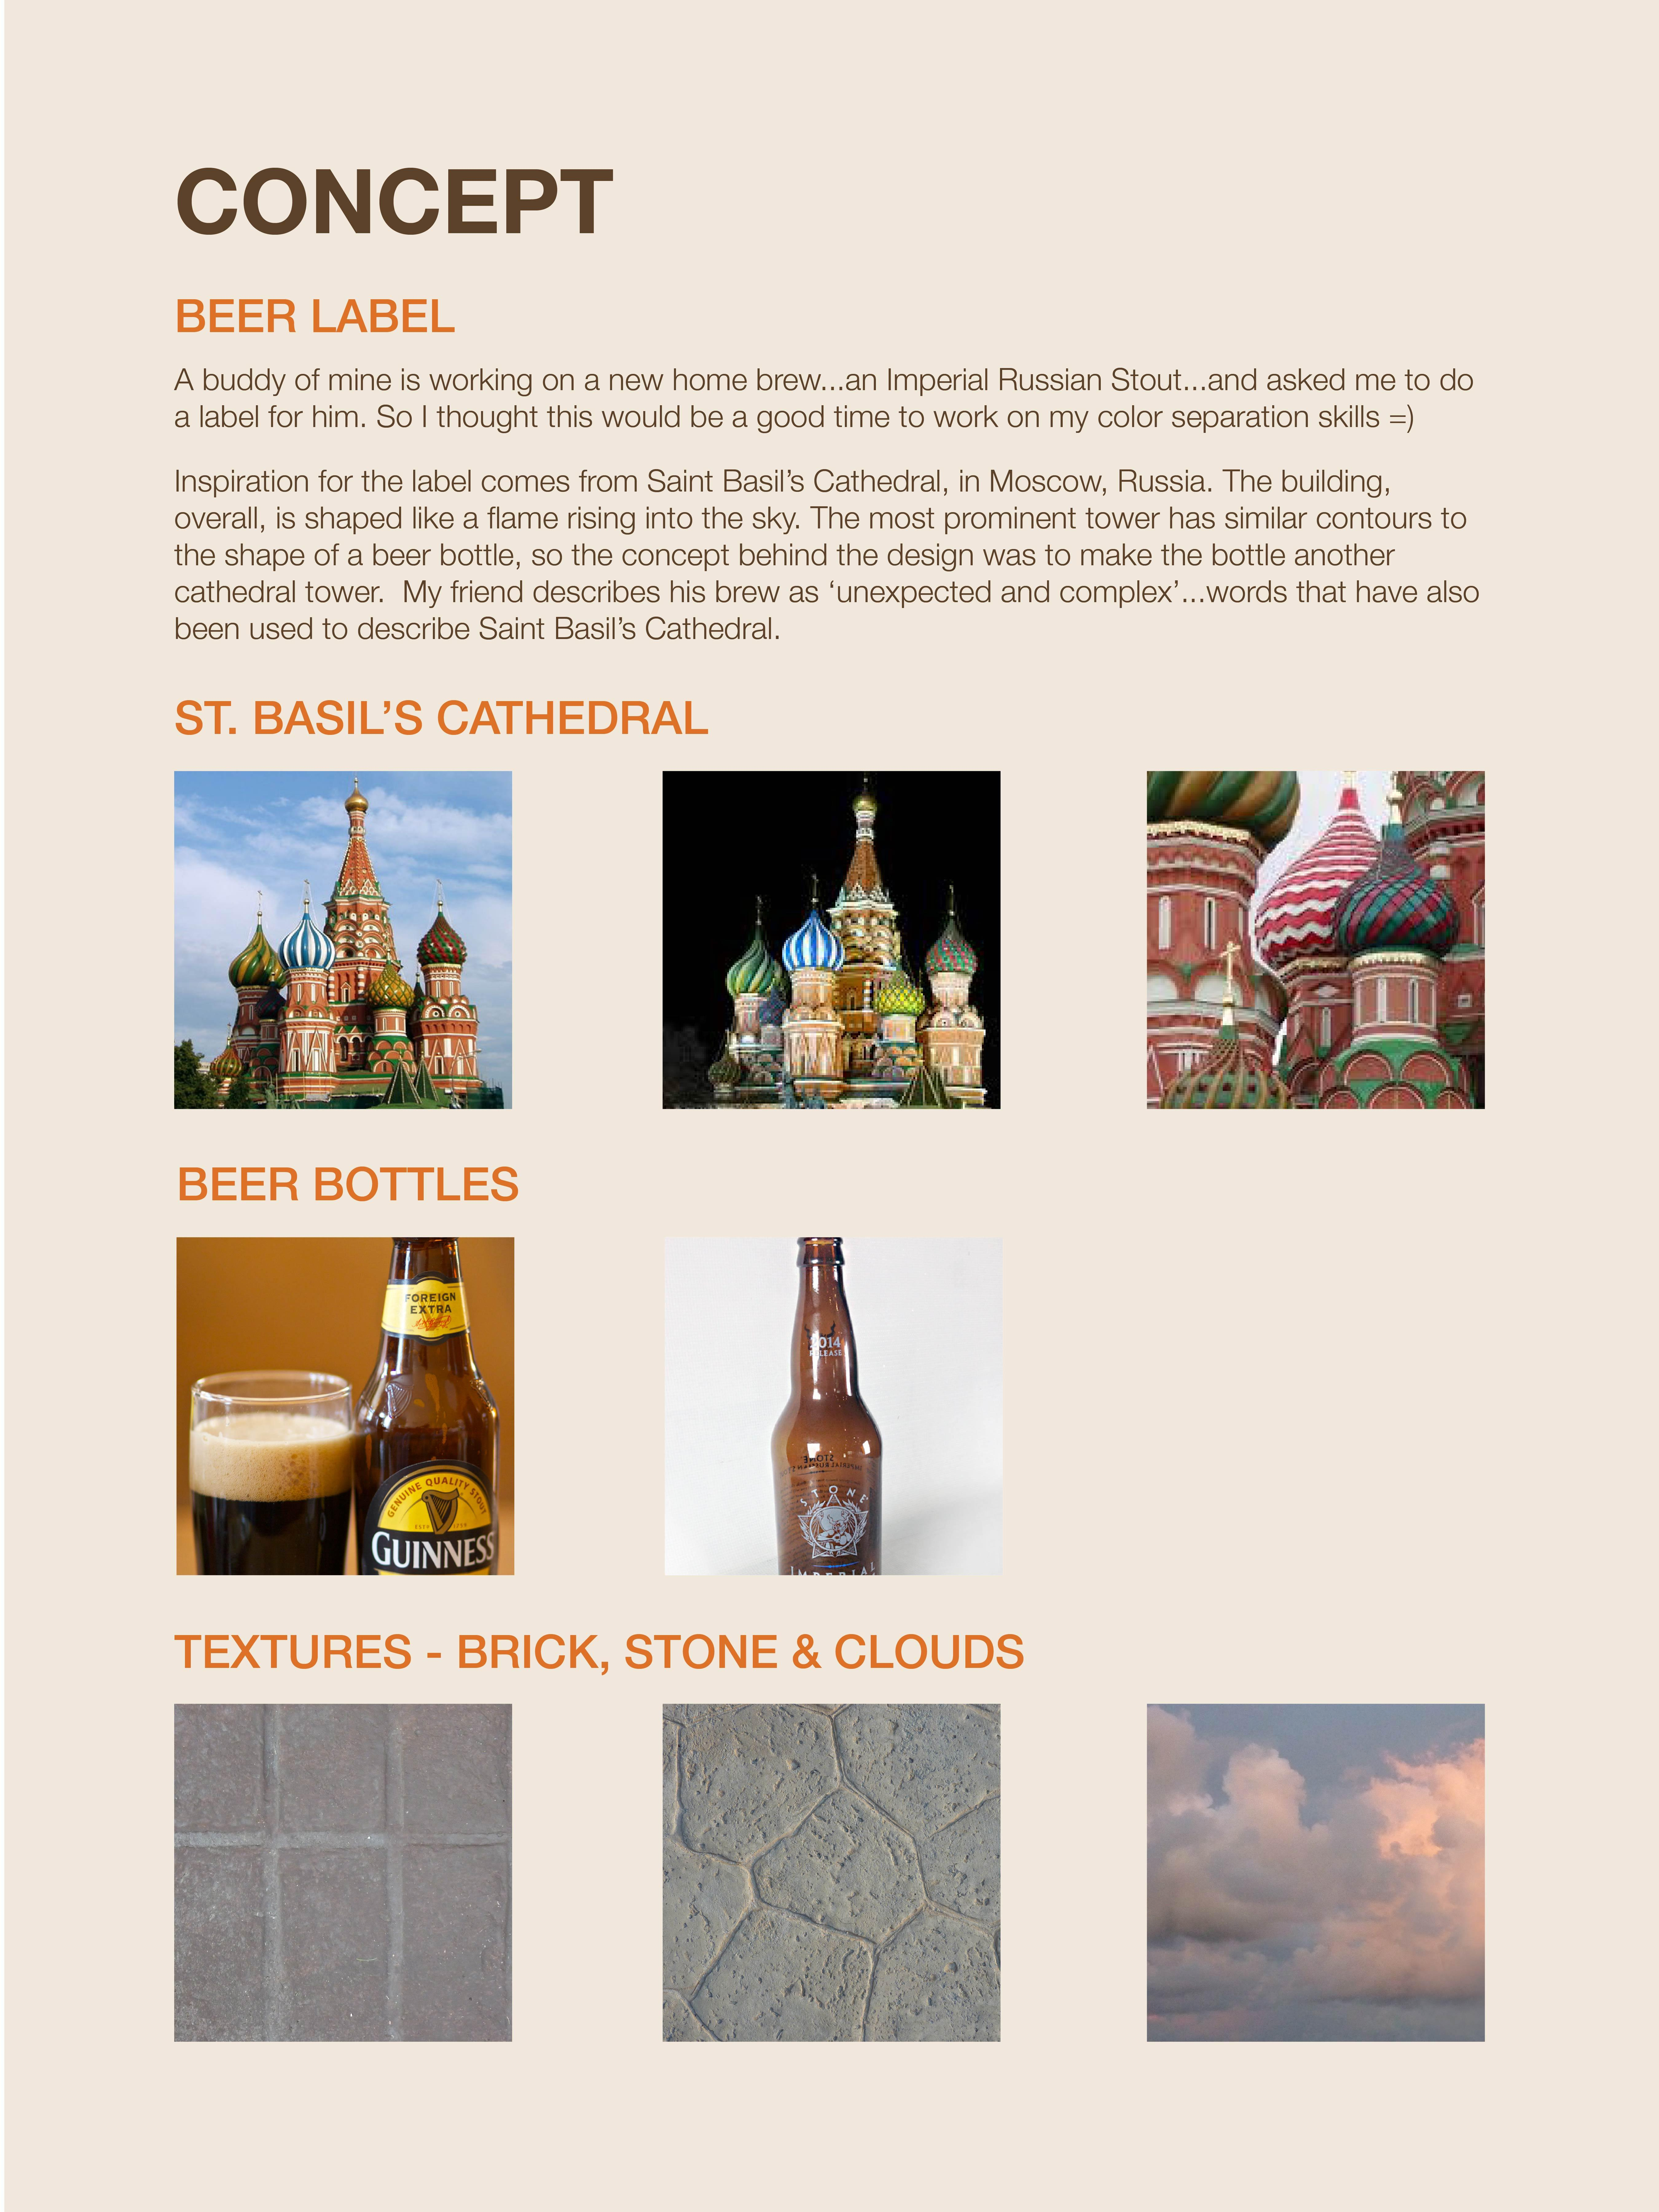 Imperial Russian Stout Beer - image 2 - student project